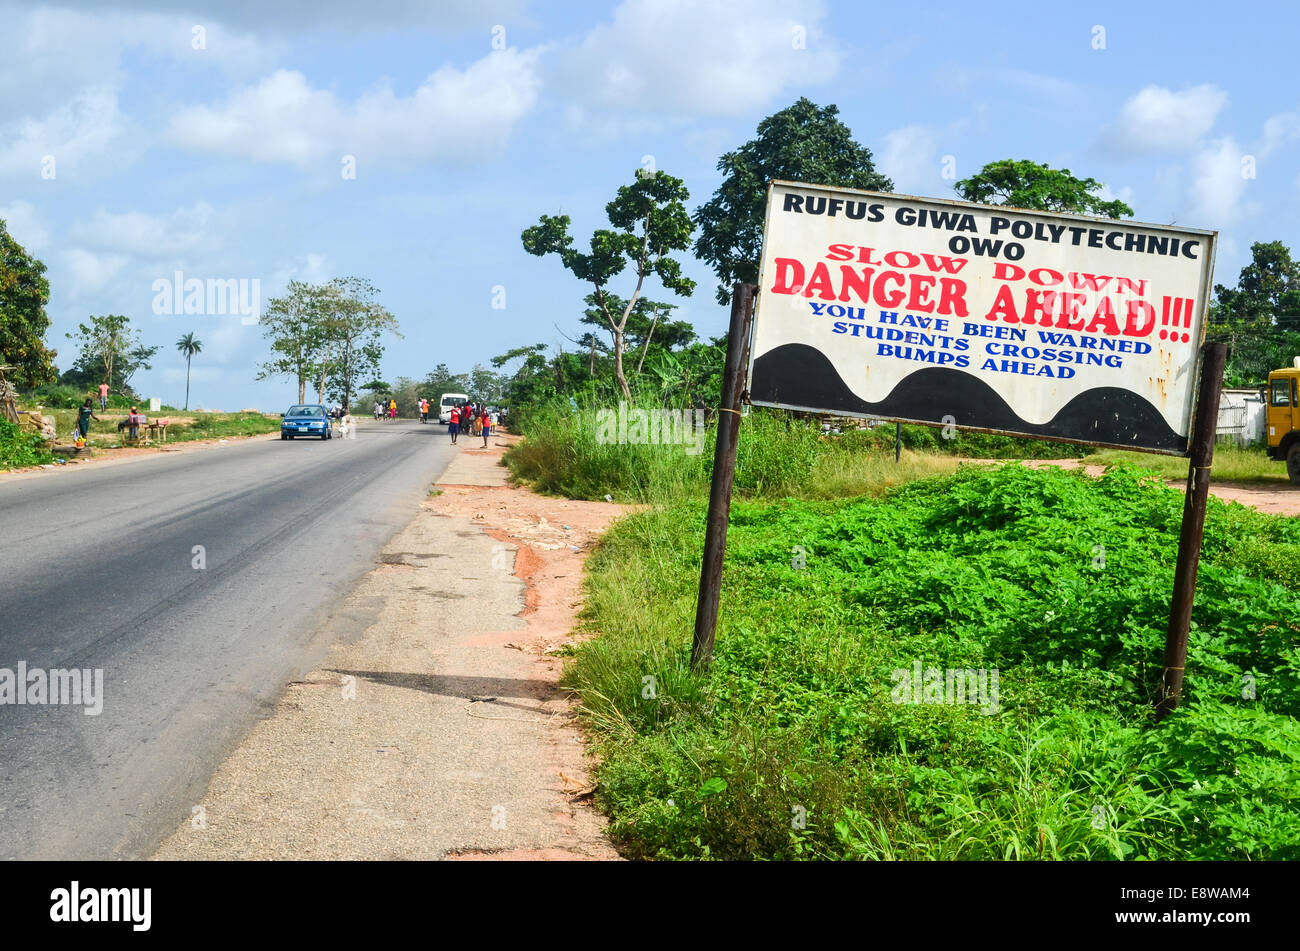 'Danger ahead' sign at a polytechnic school in Nigeria - Stock Image